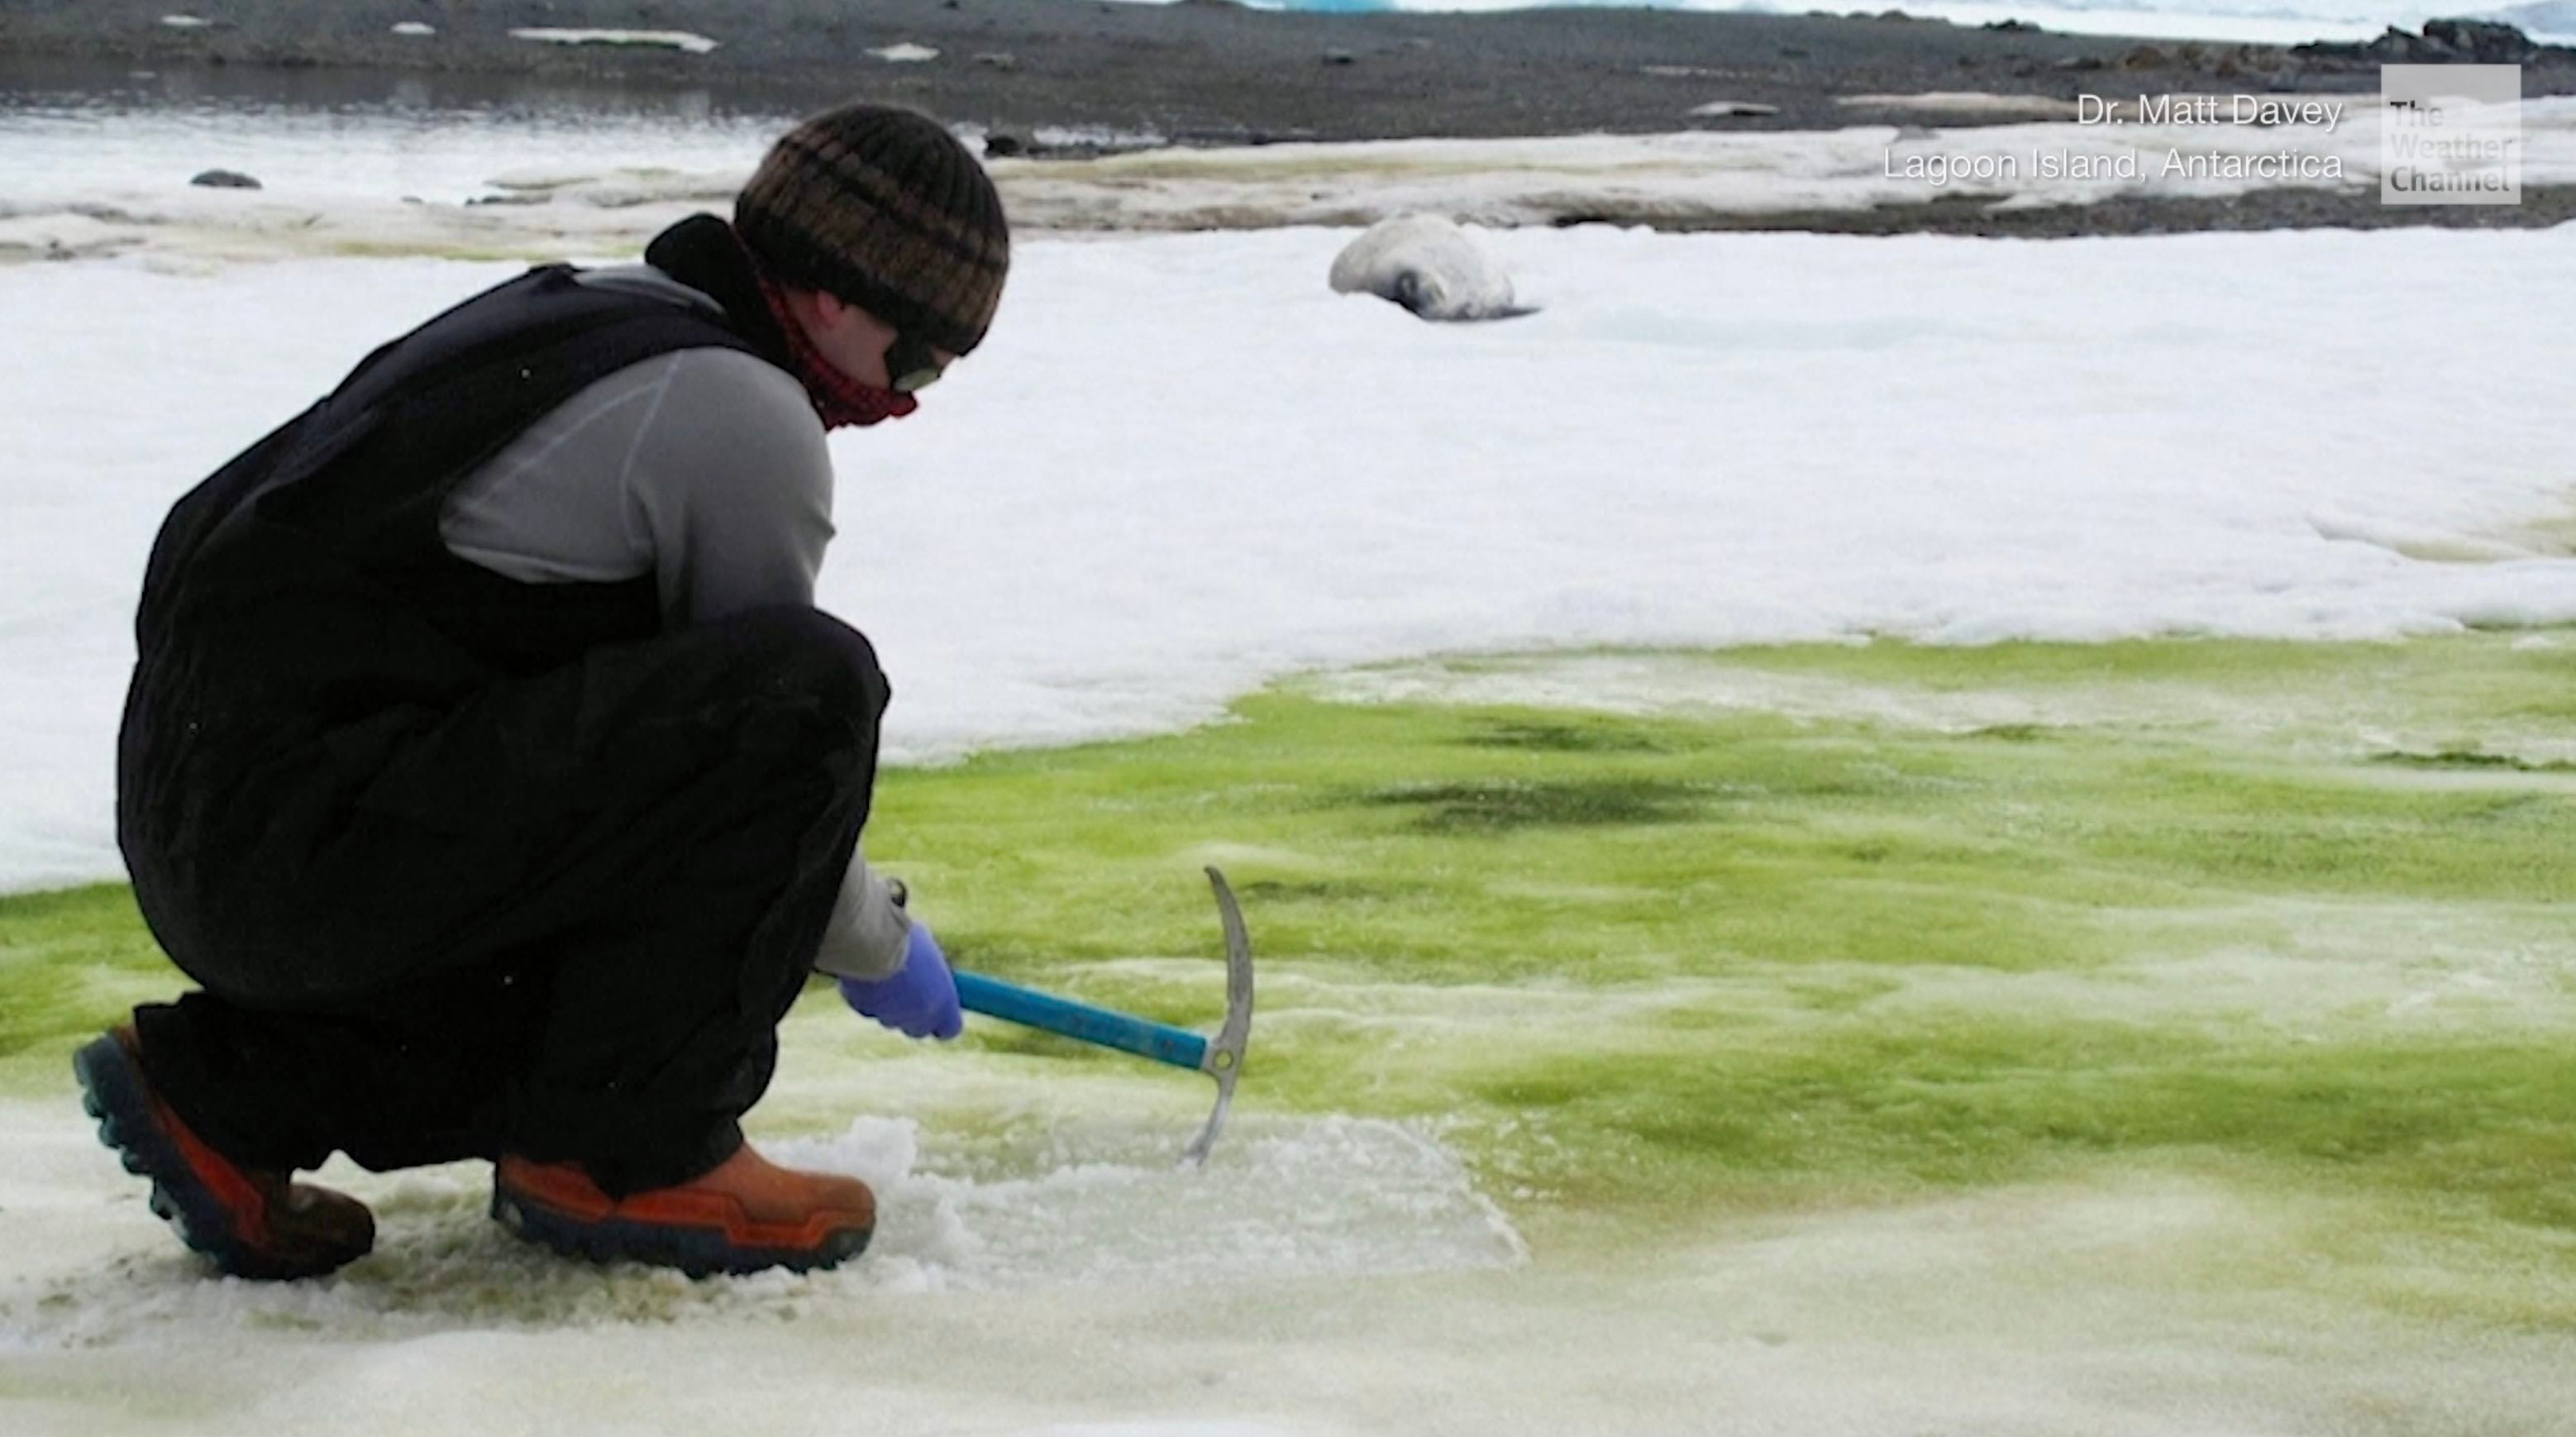 Green Algae blooms are popping up more often on Antarctica's white snow because of warming temperatures.